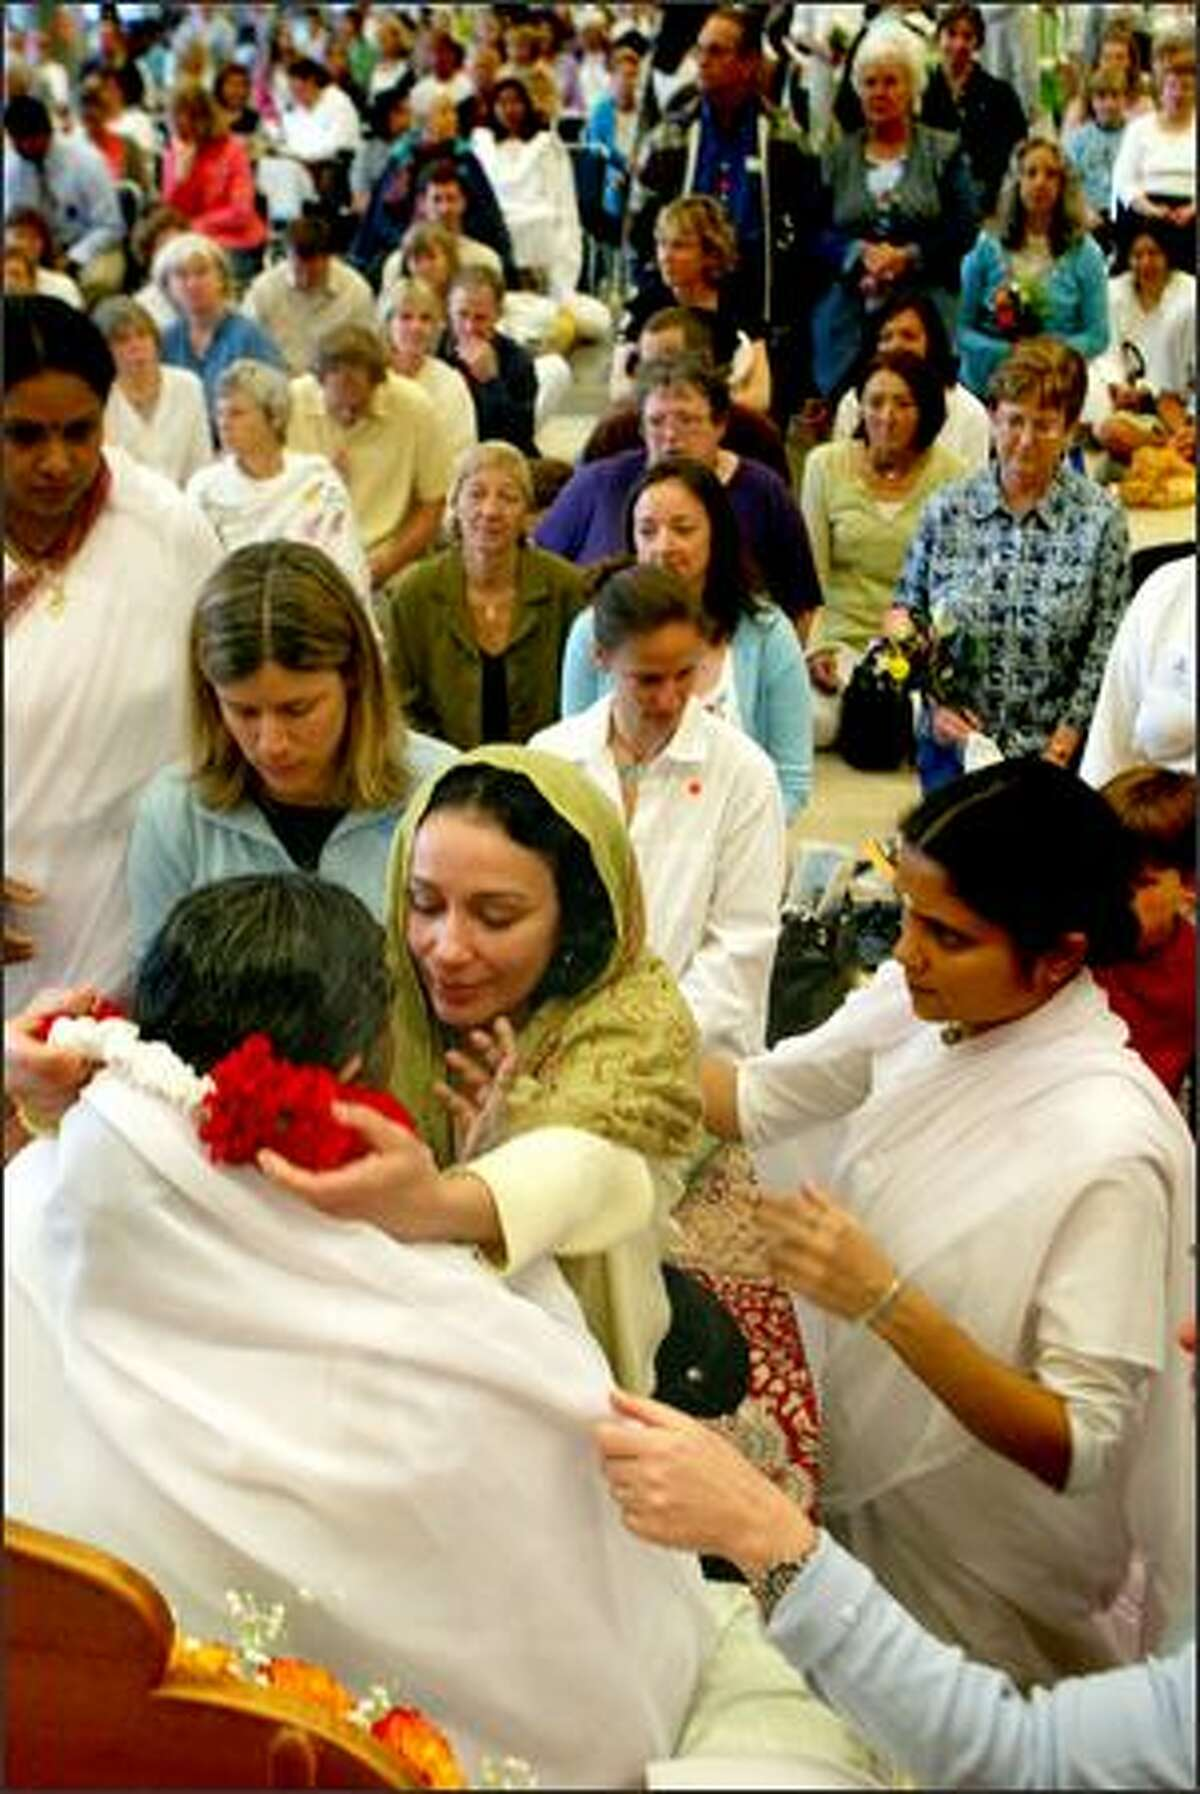 Jyota Borges, now living in Seattle, places a garland around the Amma.